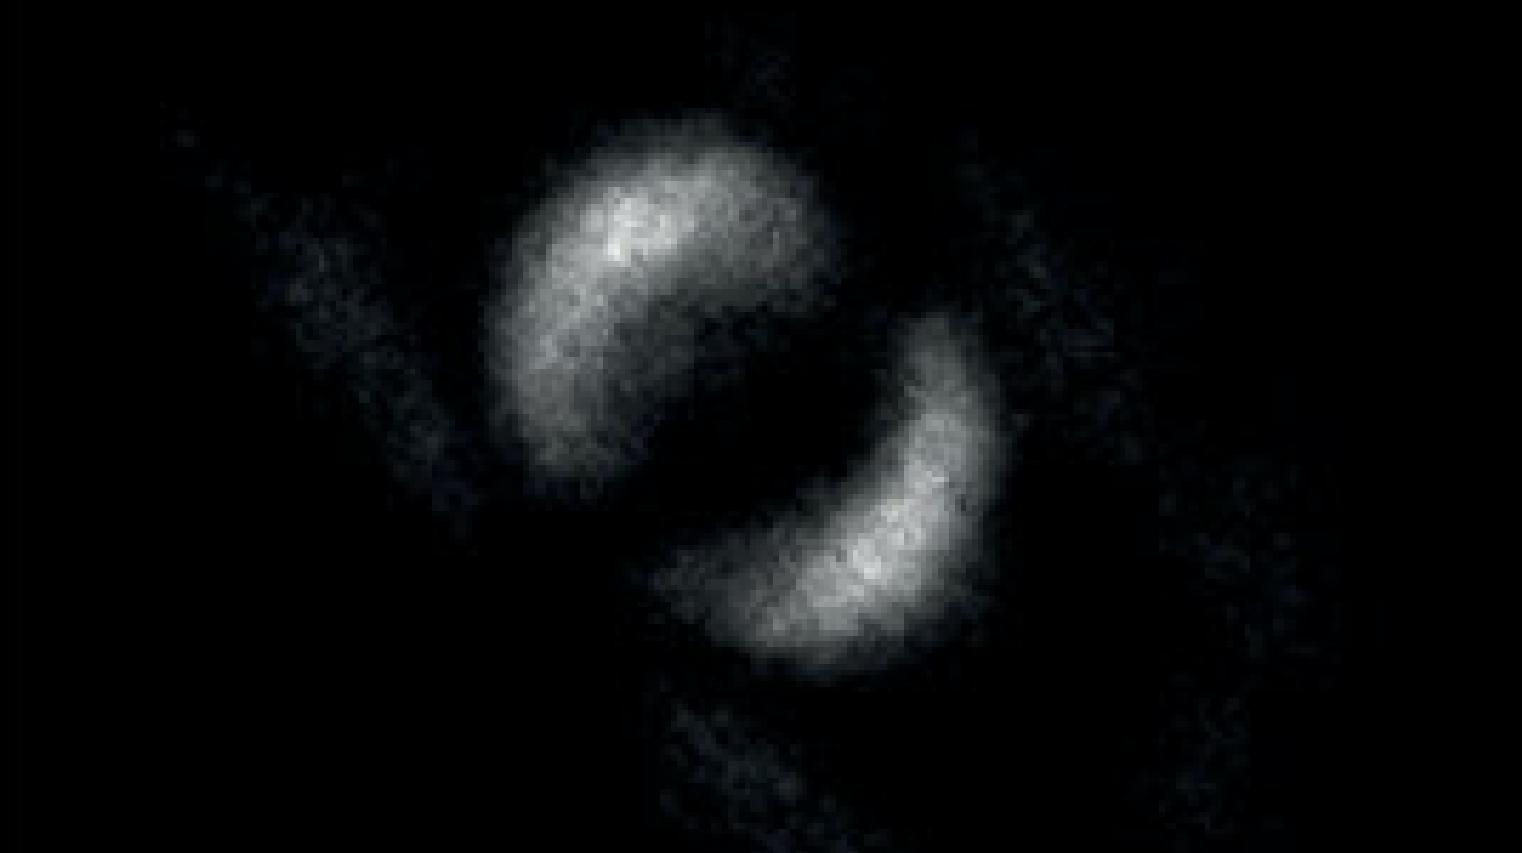 This Is An Image Of Quantum Entanglement, Sort Of